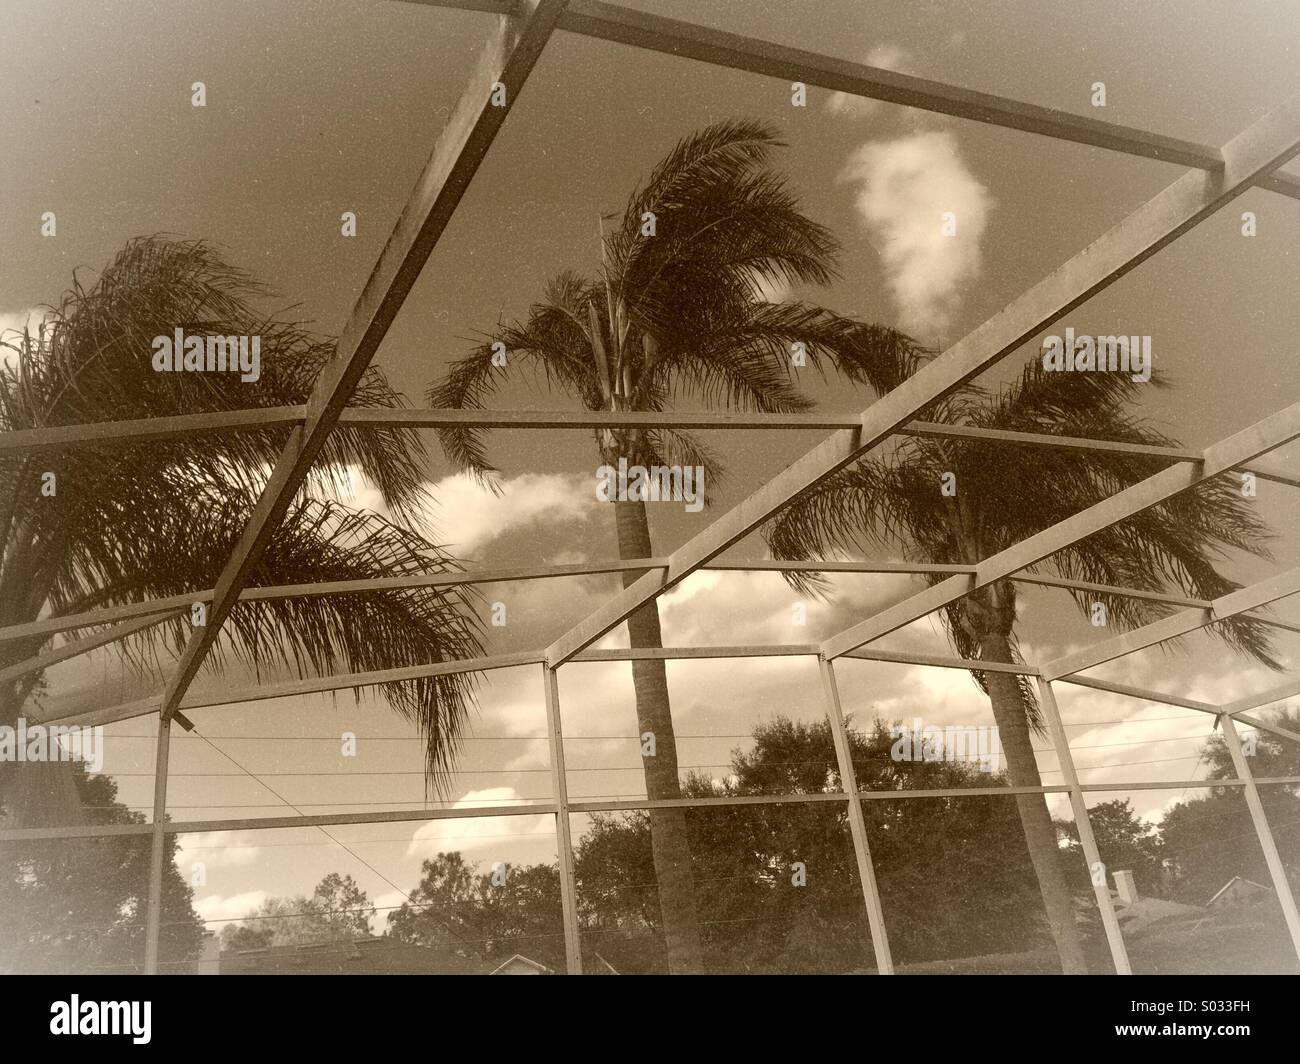 Palm trees through a patio screen in Florida - Stock Image